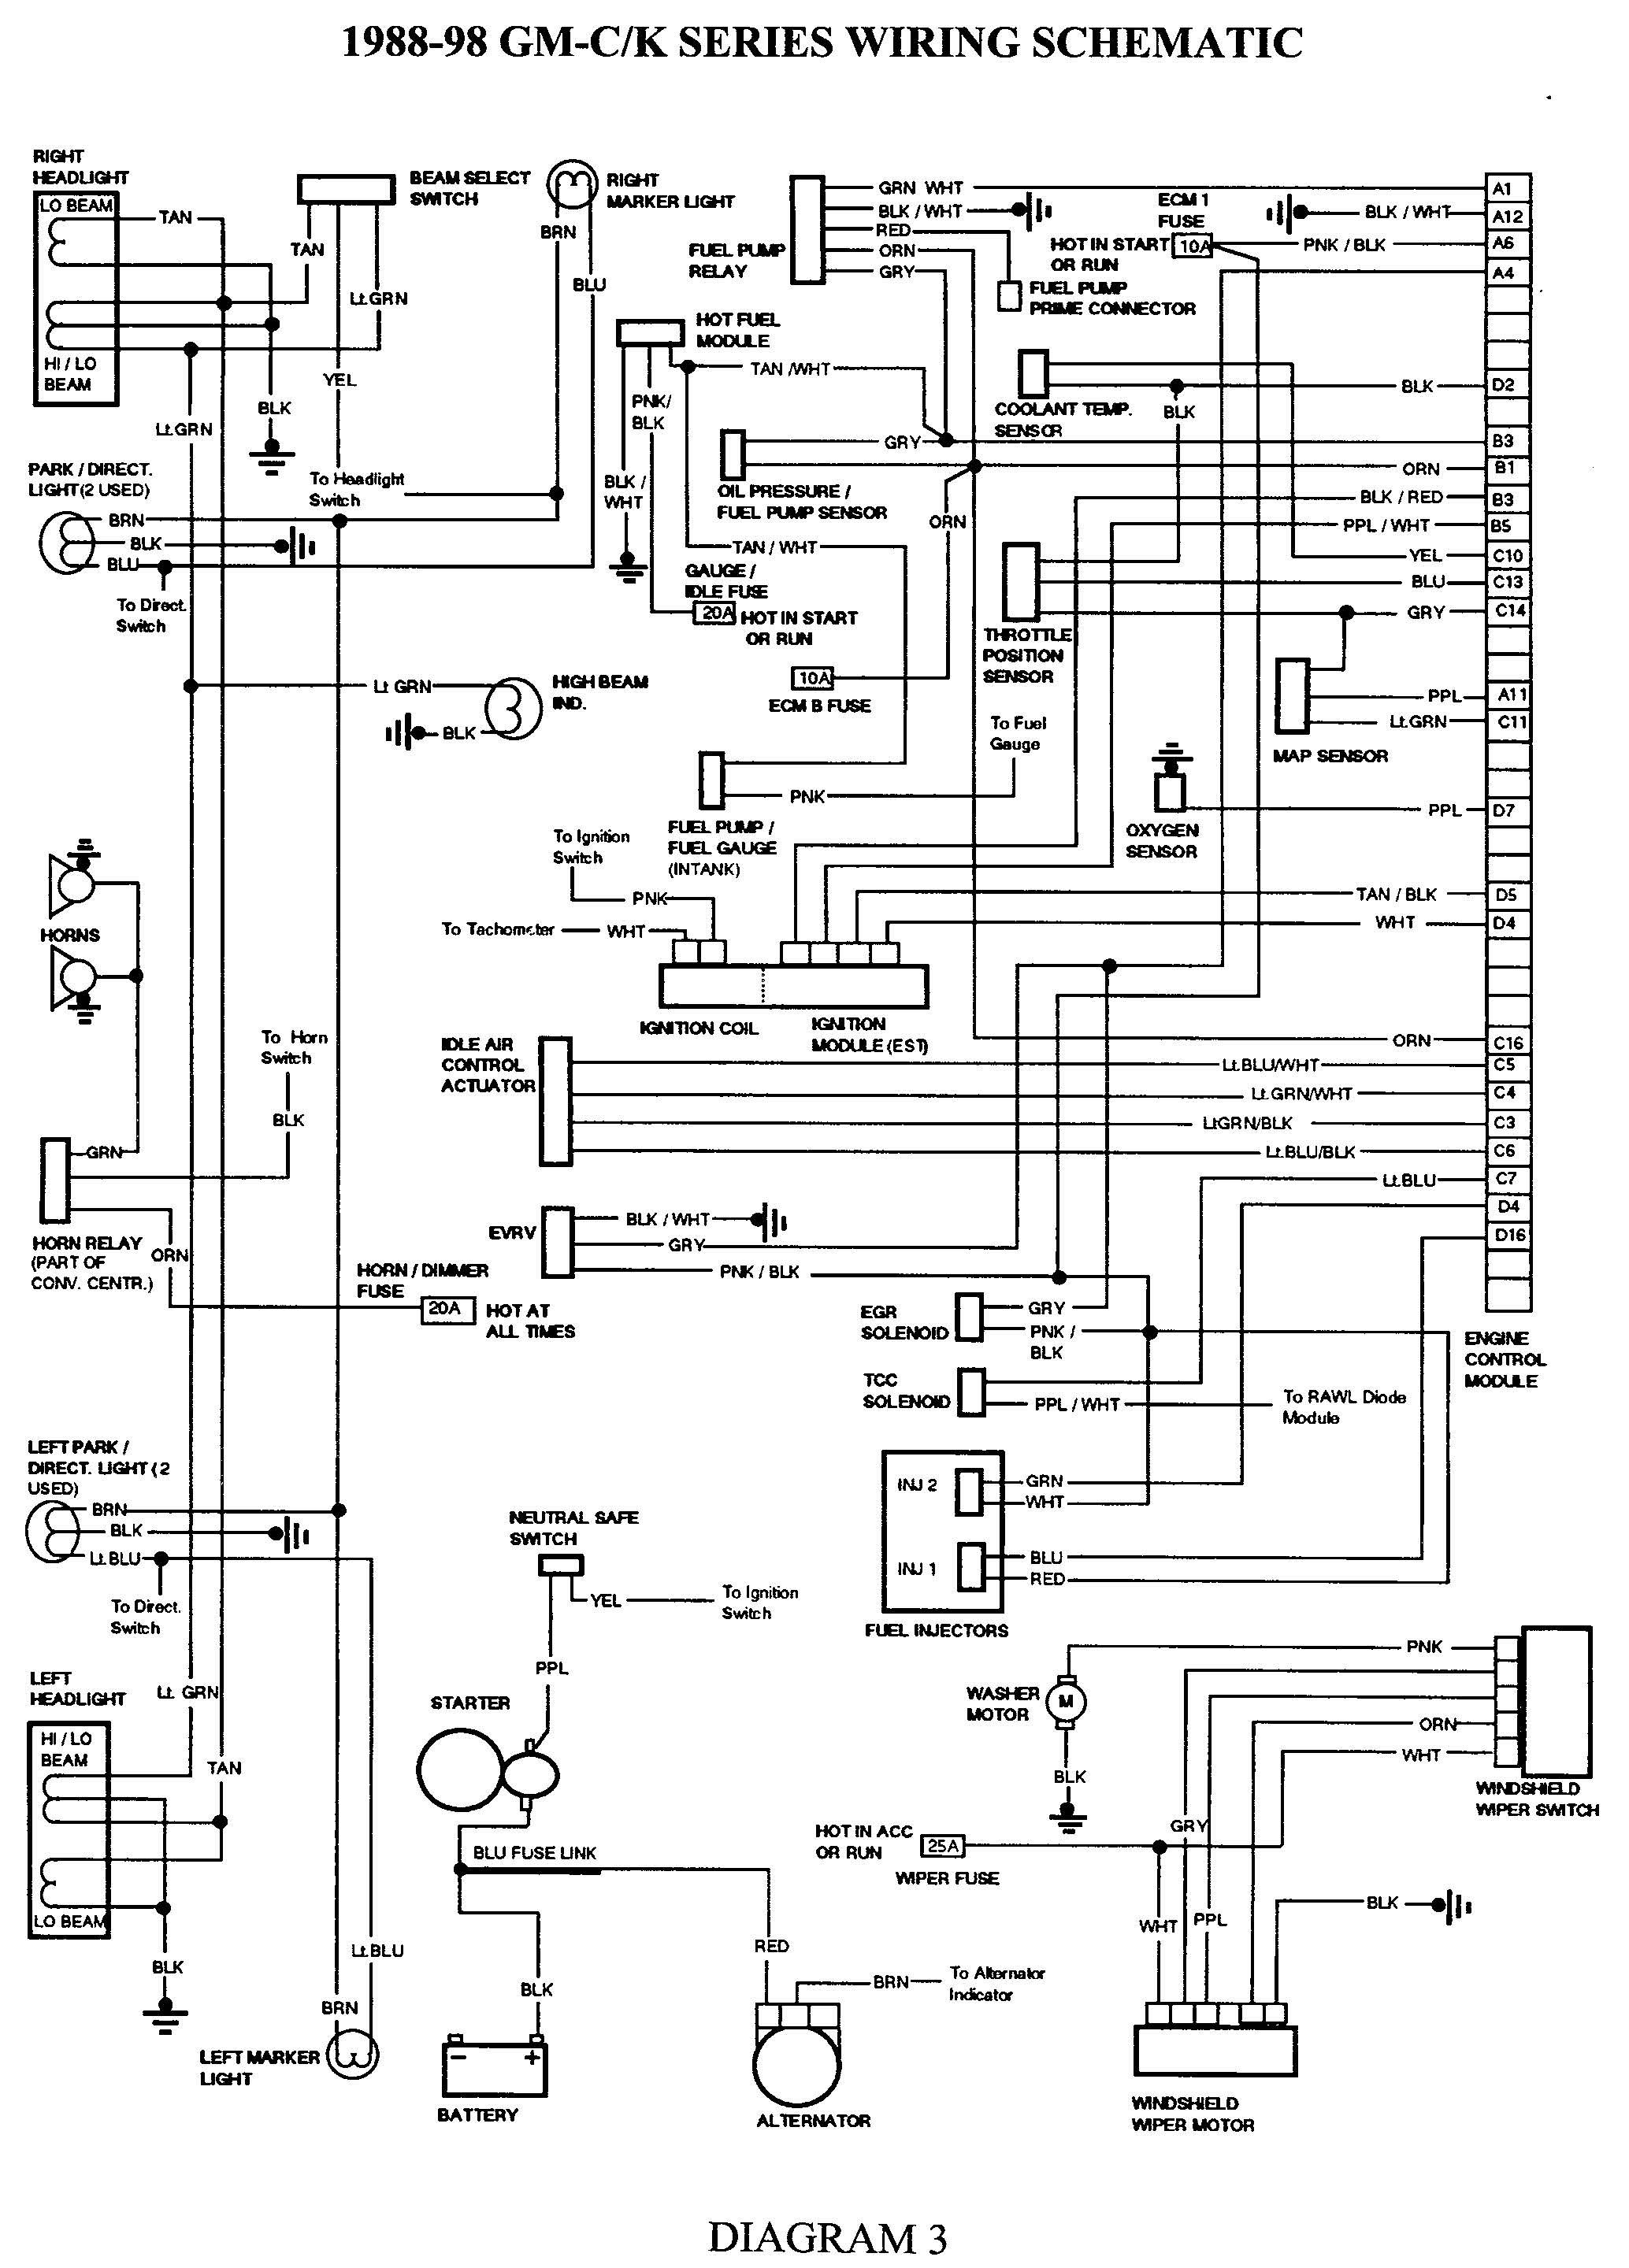 1986 chevrolet c10 5 7 v8 engine wiring diagram chevrolet c 1500 rh pinterest com 65 Chevy Truck Wiring Diagram 87 Chevy Truck Wiring Diagram